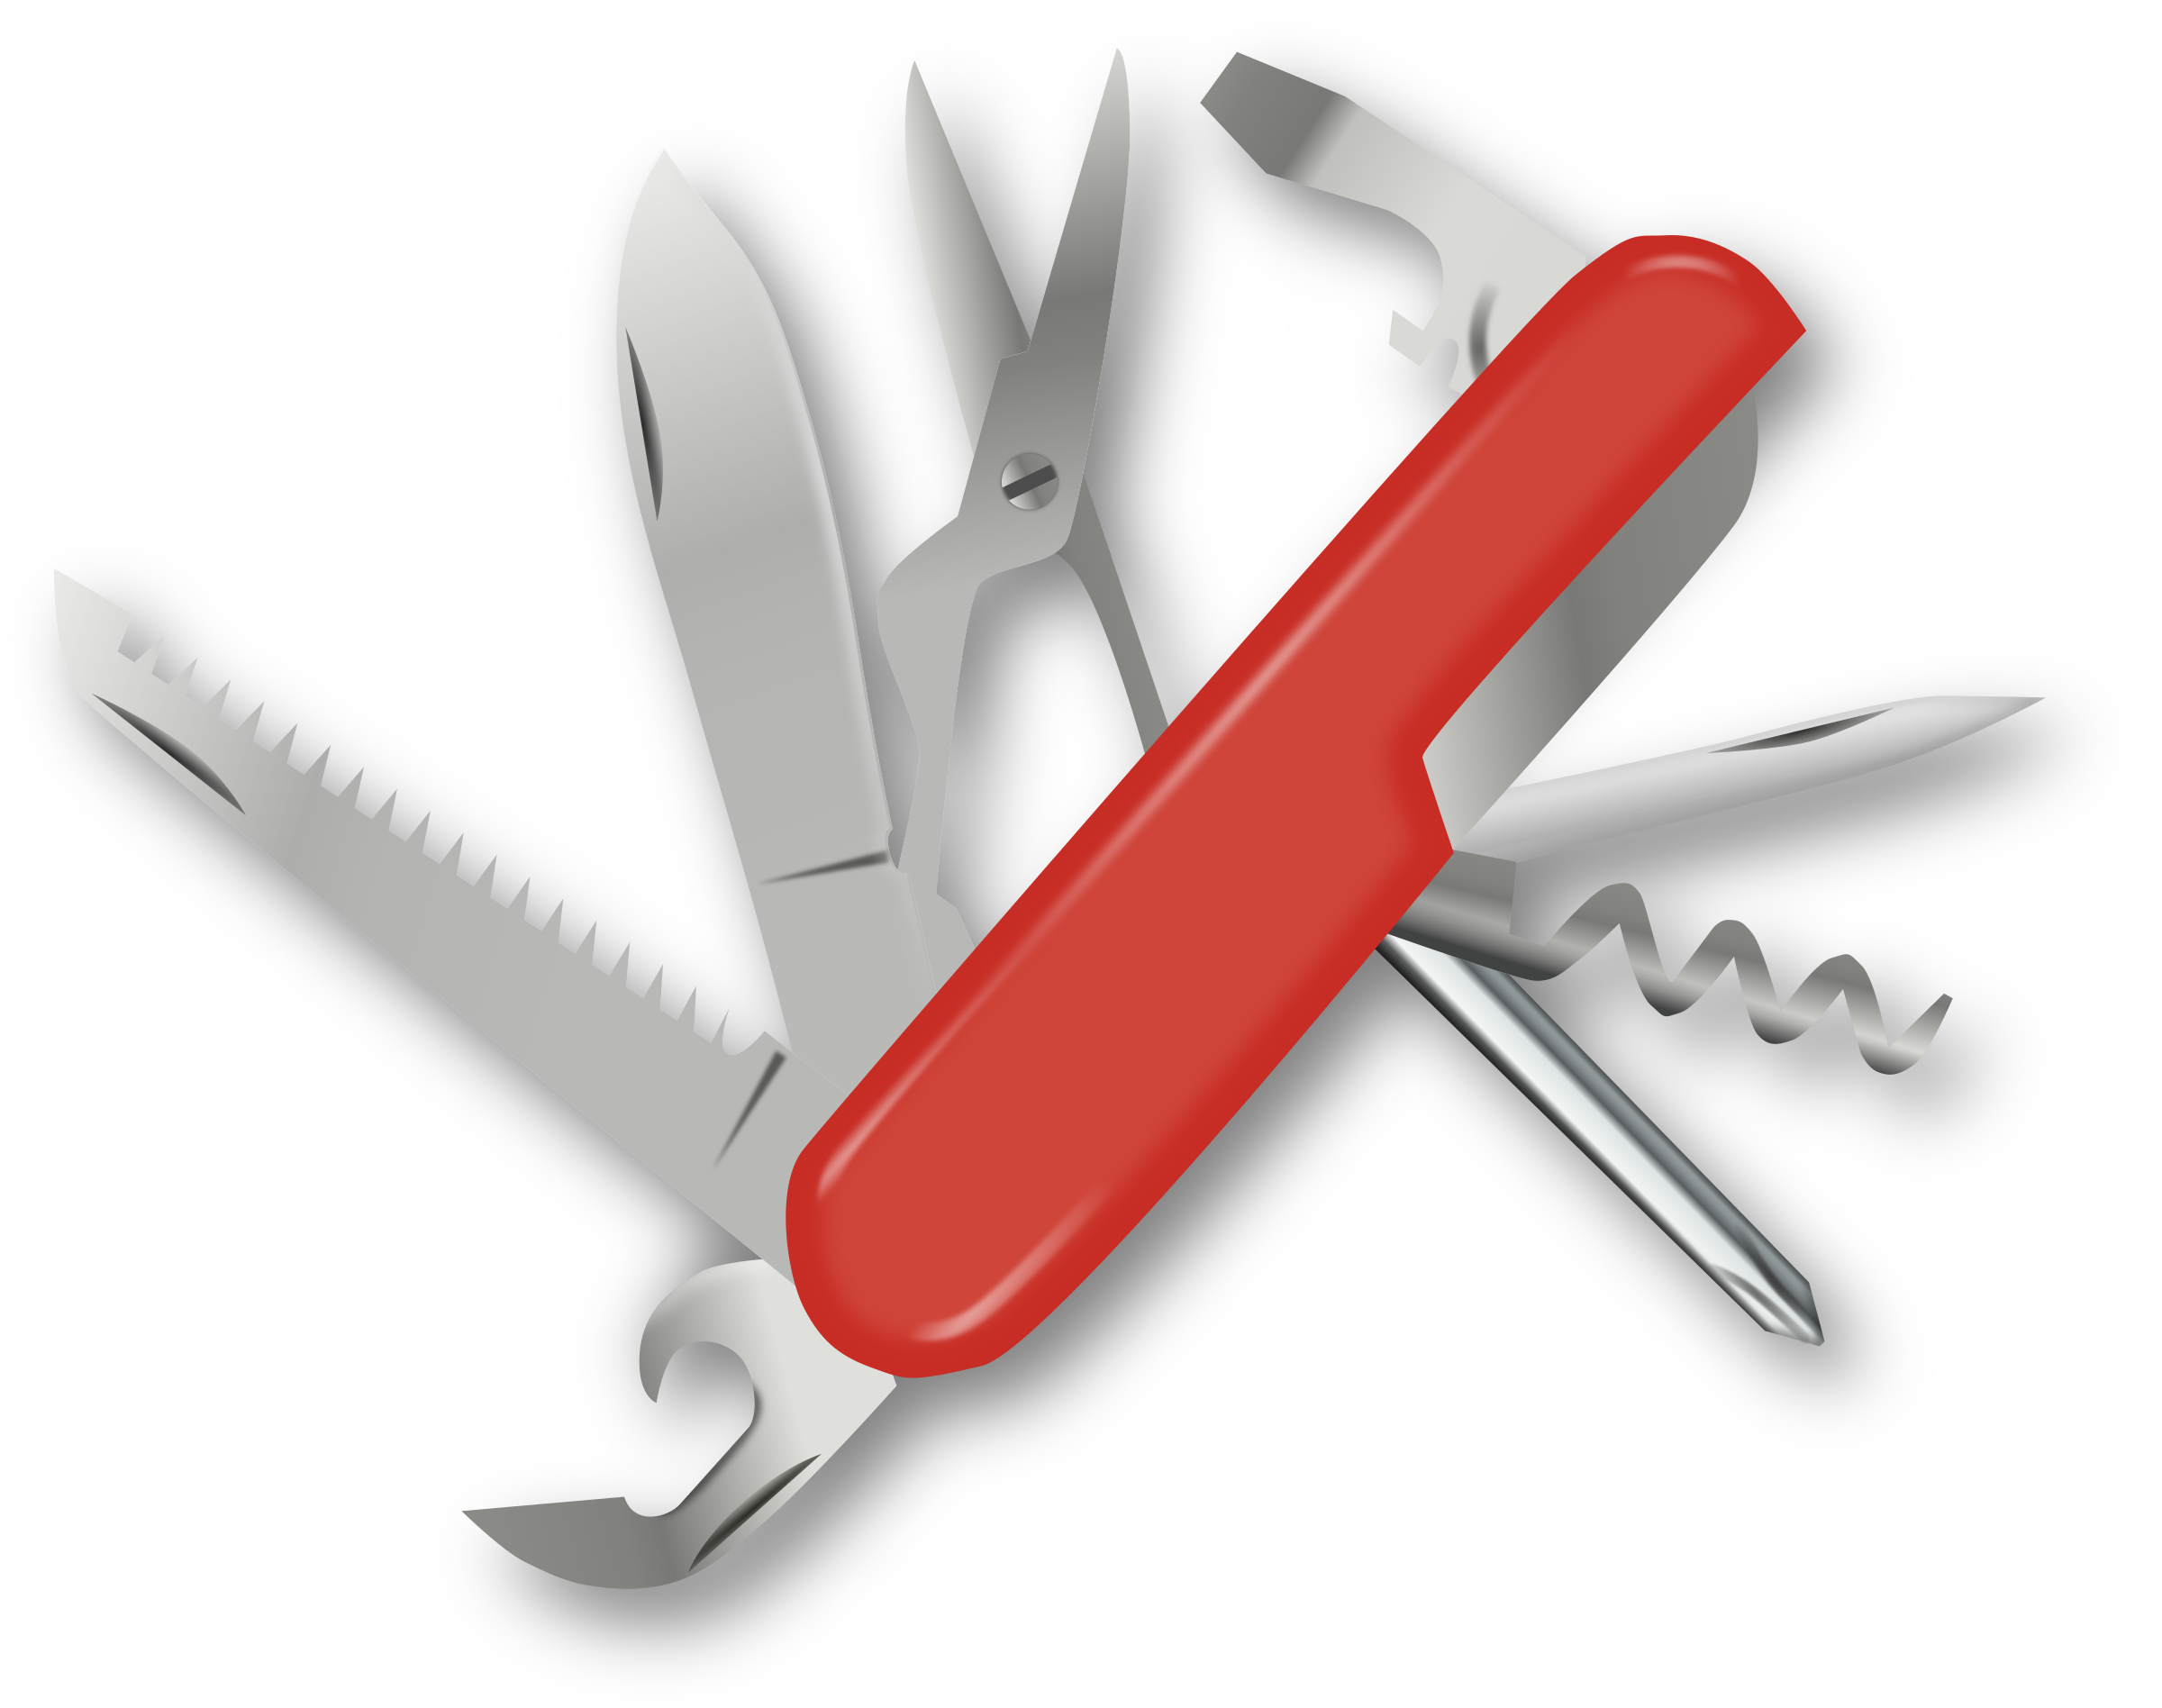 Swiss Army Knife by gnokii